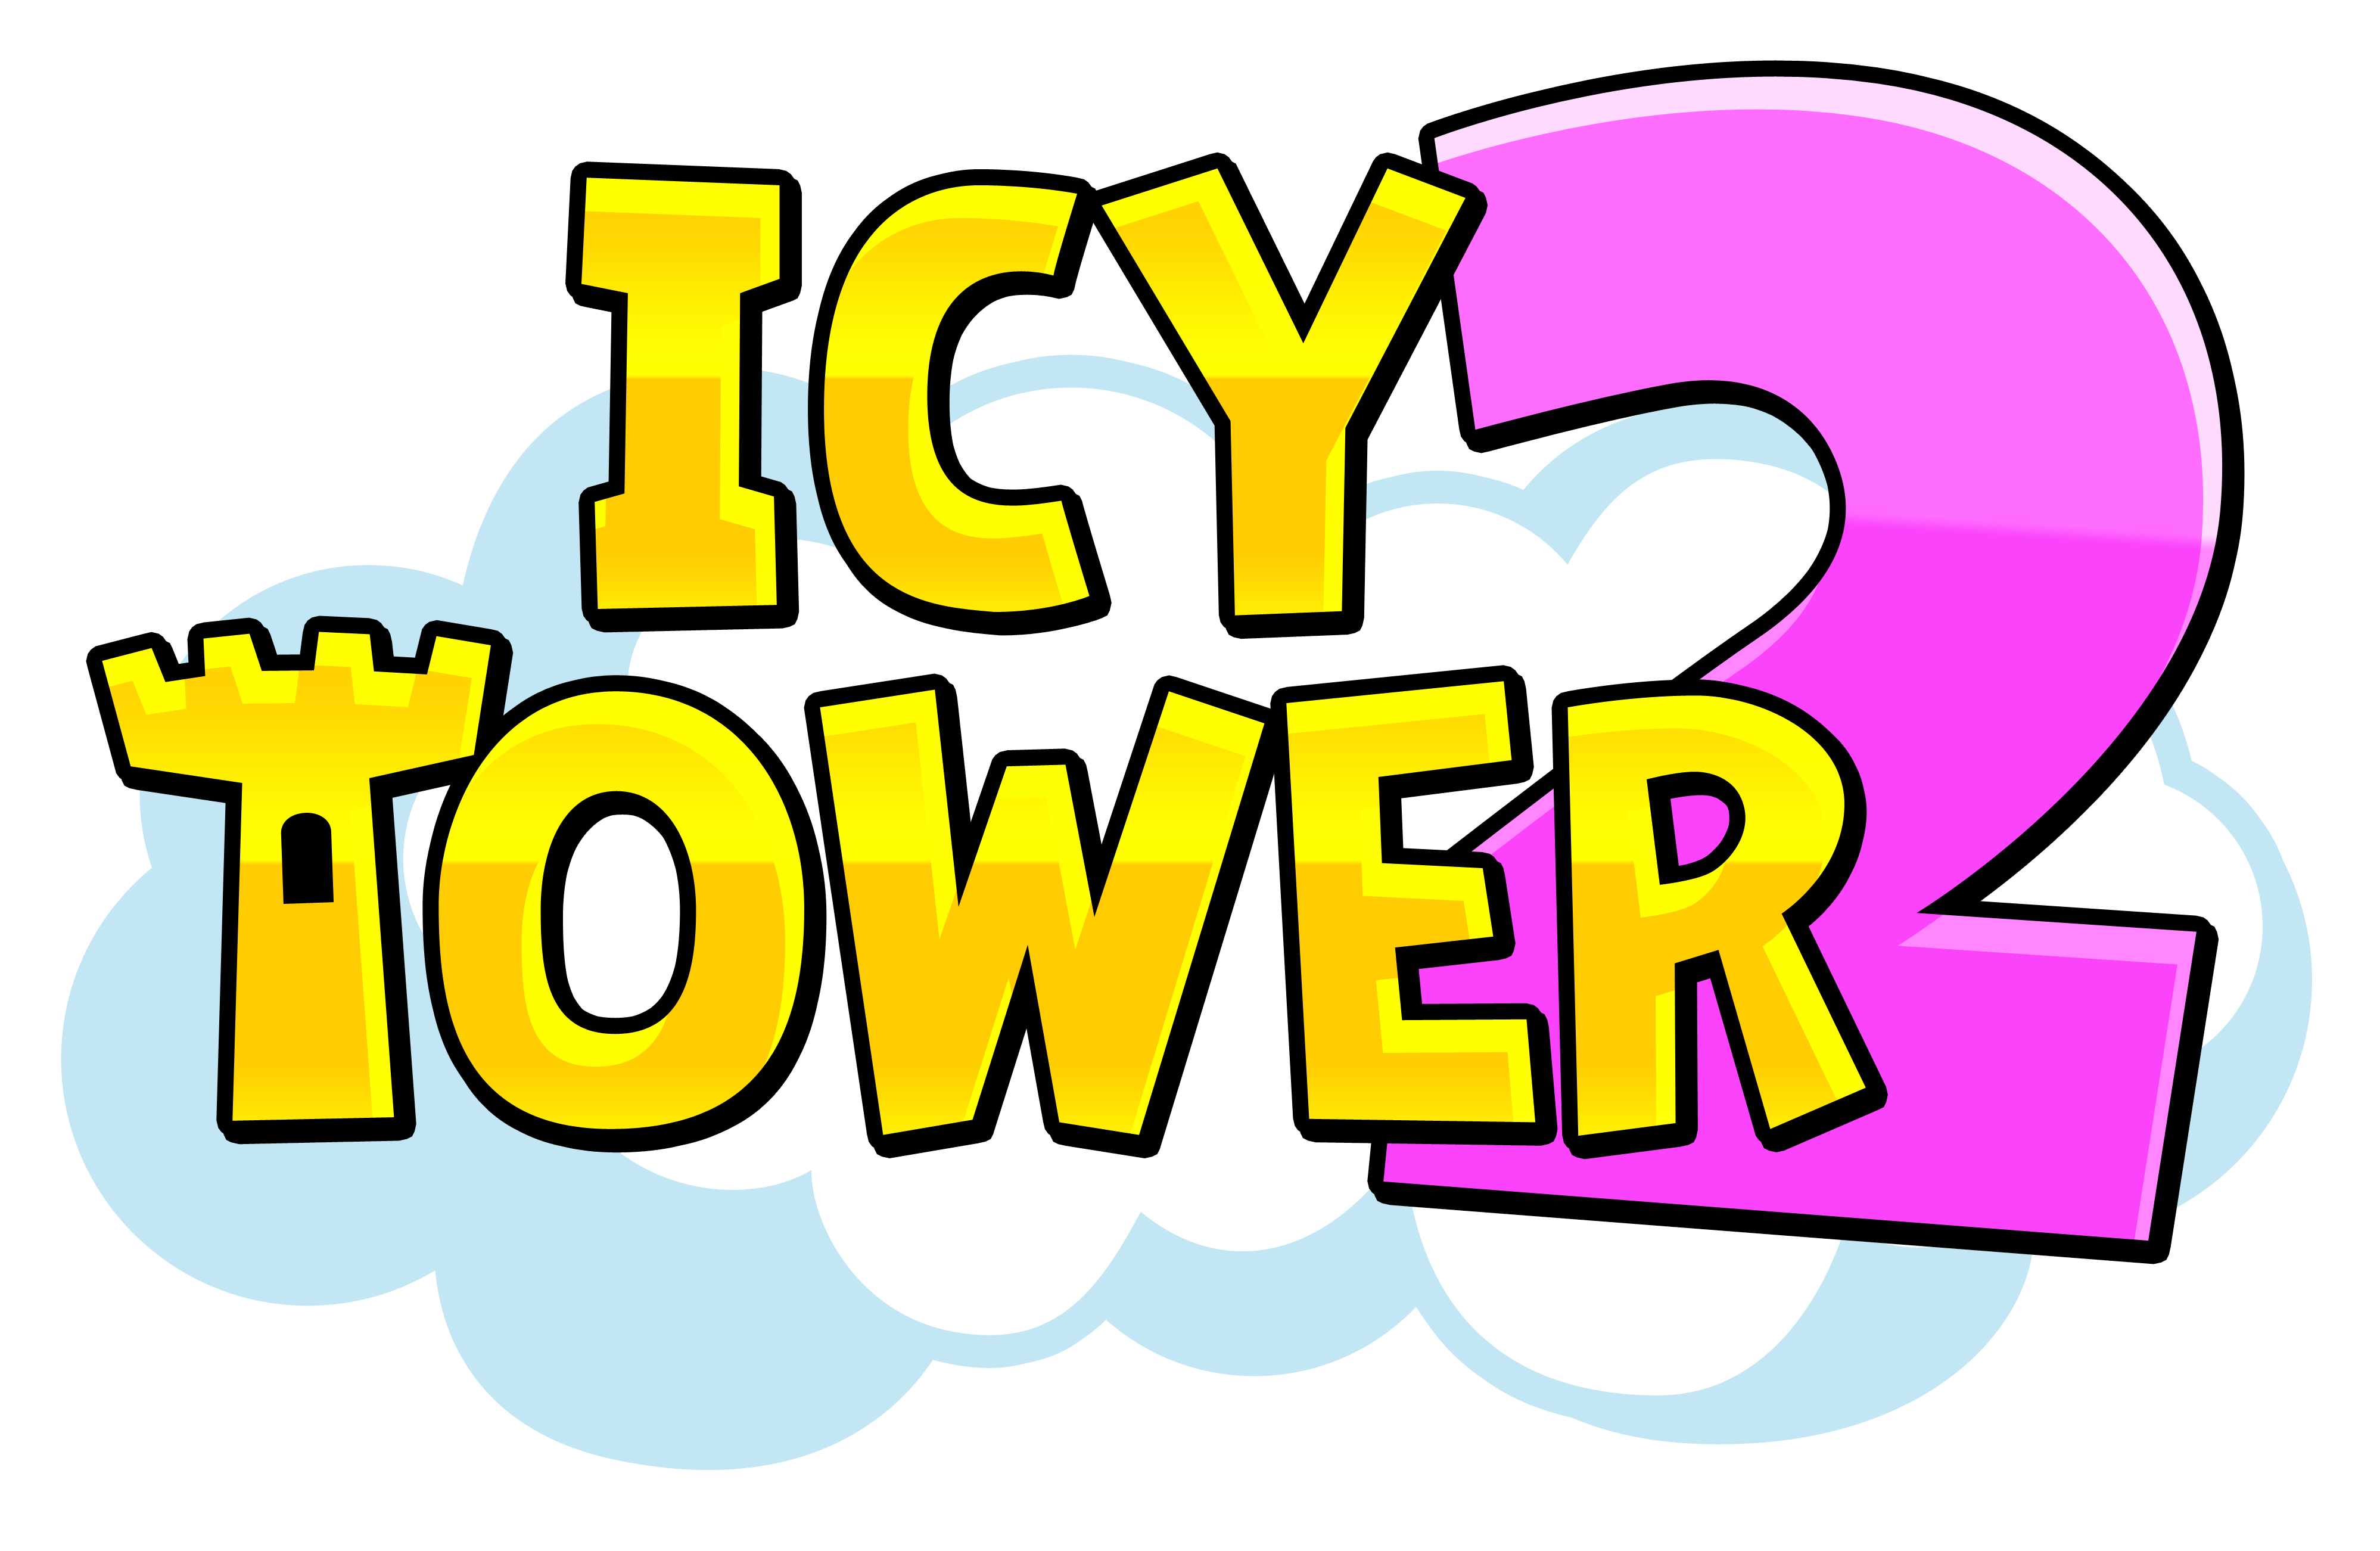 Icy Tower 2 Is A Jumping Game For Android Http En Softmonk Com Android Icy Tower 2 Ios Games Ios Android